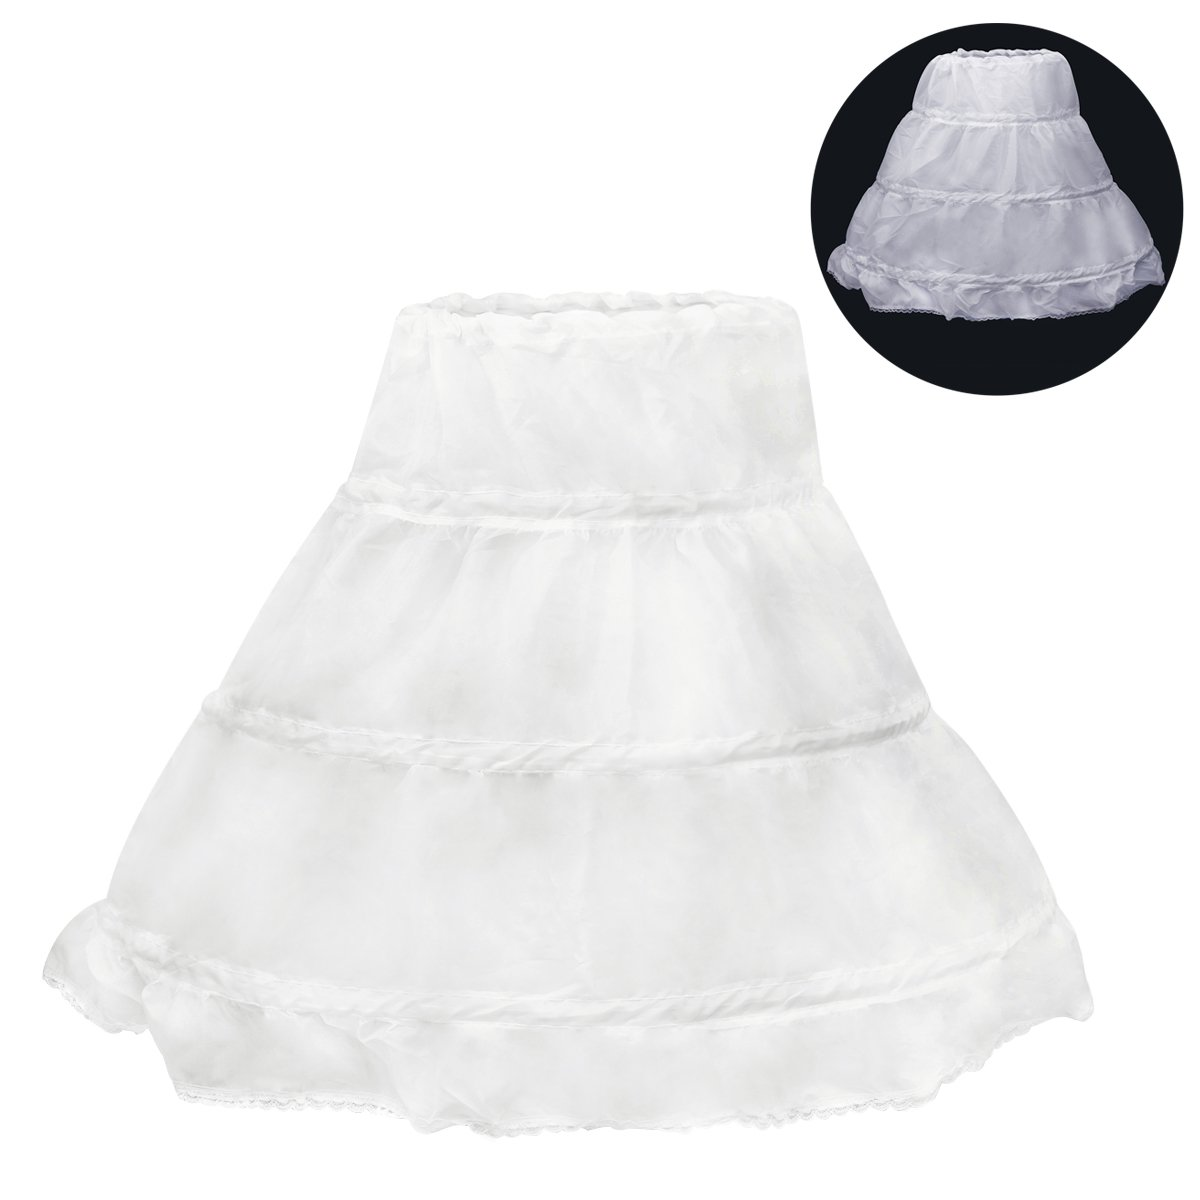 f79b48f05f3d DescriptionThis crinoline skirt is beautiful dress for children. It has 3  steel hoops, elastic design with hook and loop straps and and is foldable.